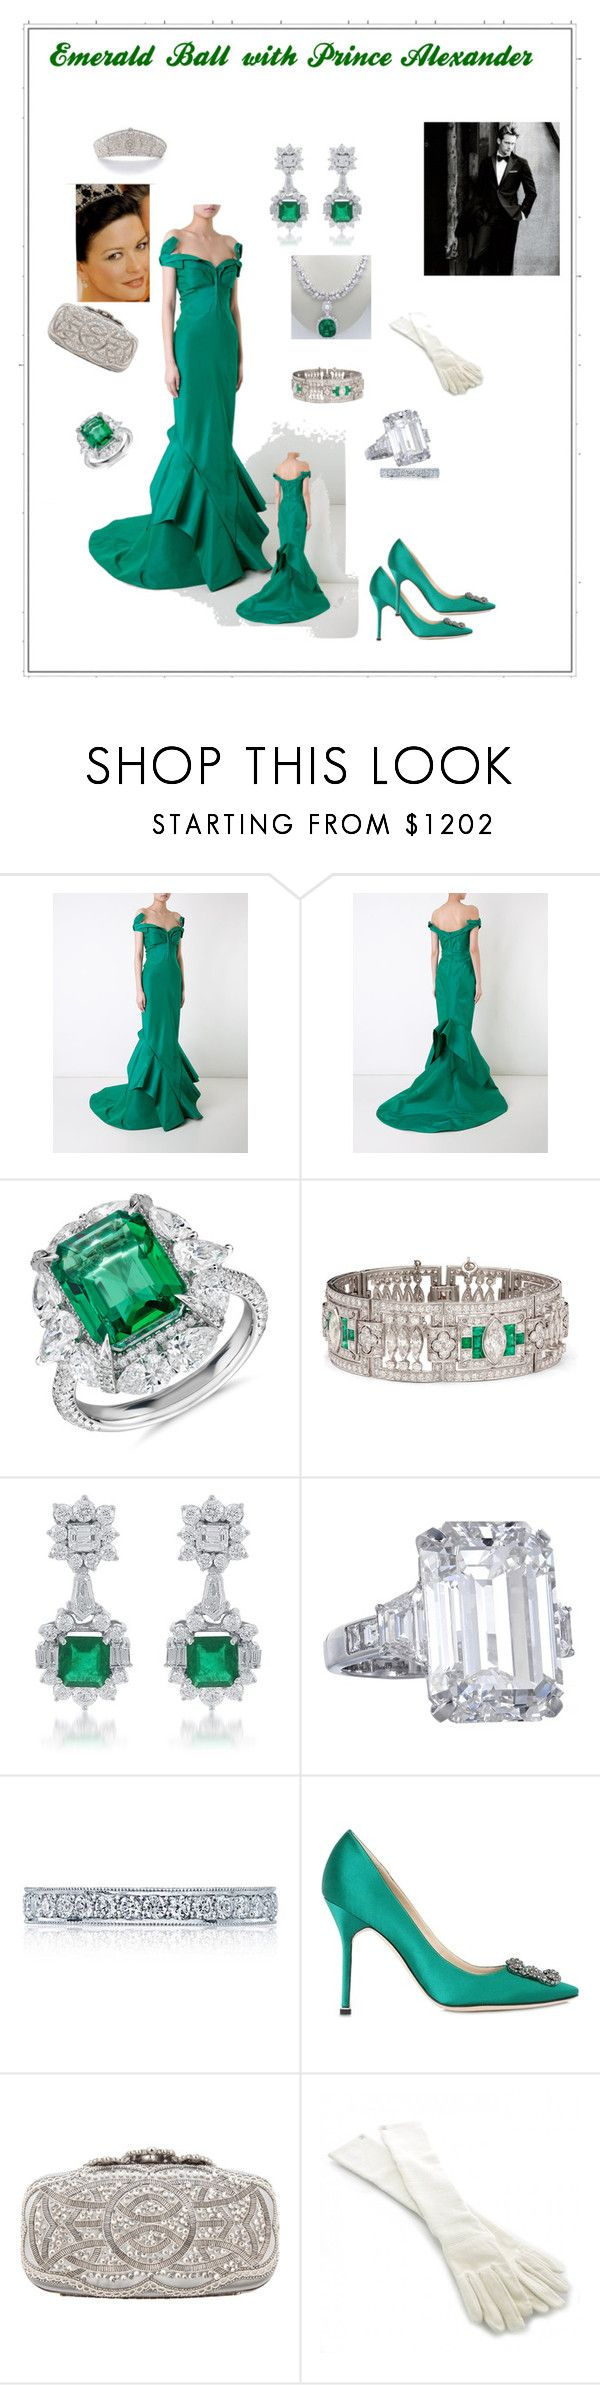 """""""Emerald Ball with Prince Alex"""" by hshprincessgebevieve ❤ liked on Polyvore featuring Zac Posen, Blue Nile, Tacori, Manolo Blahnik, Oscar de la Renta, Chanel, contest, GREEN and GreenDress"""